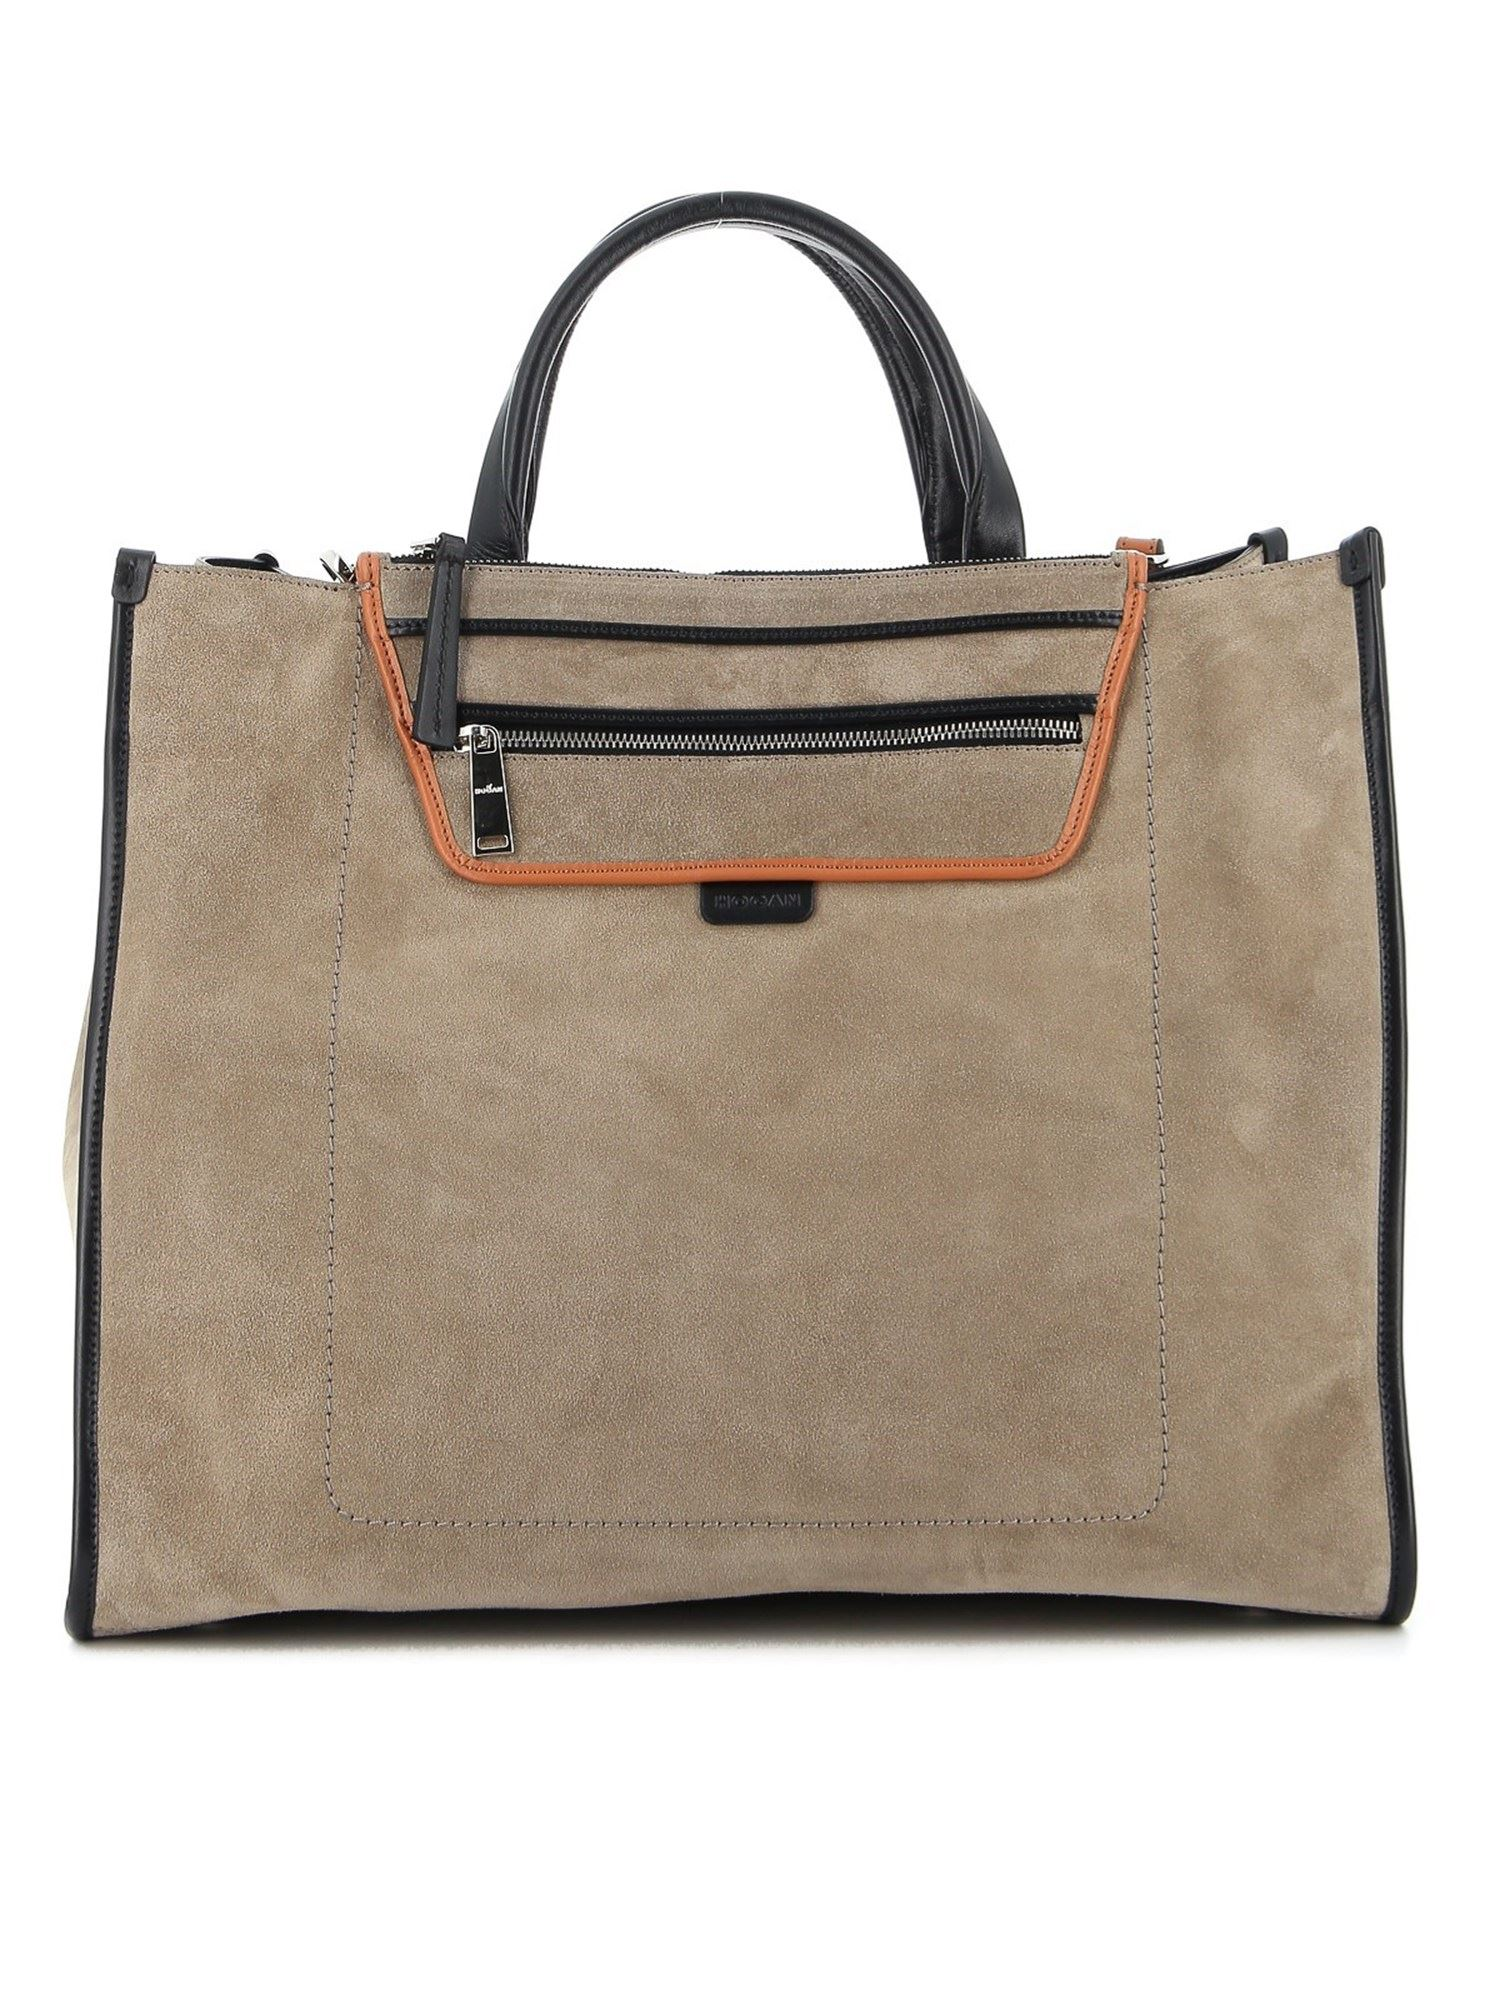 Hogan Totes H01H LARGE TOTE IN GREY